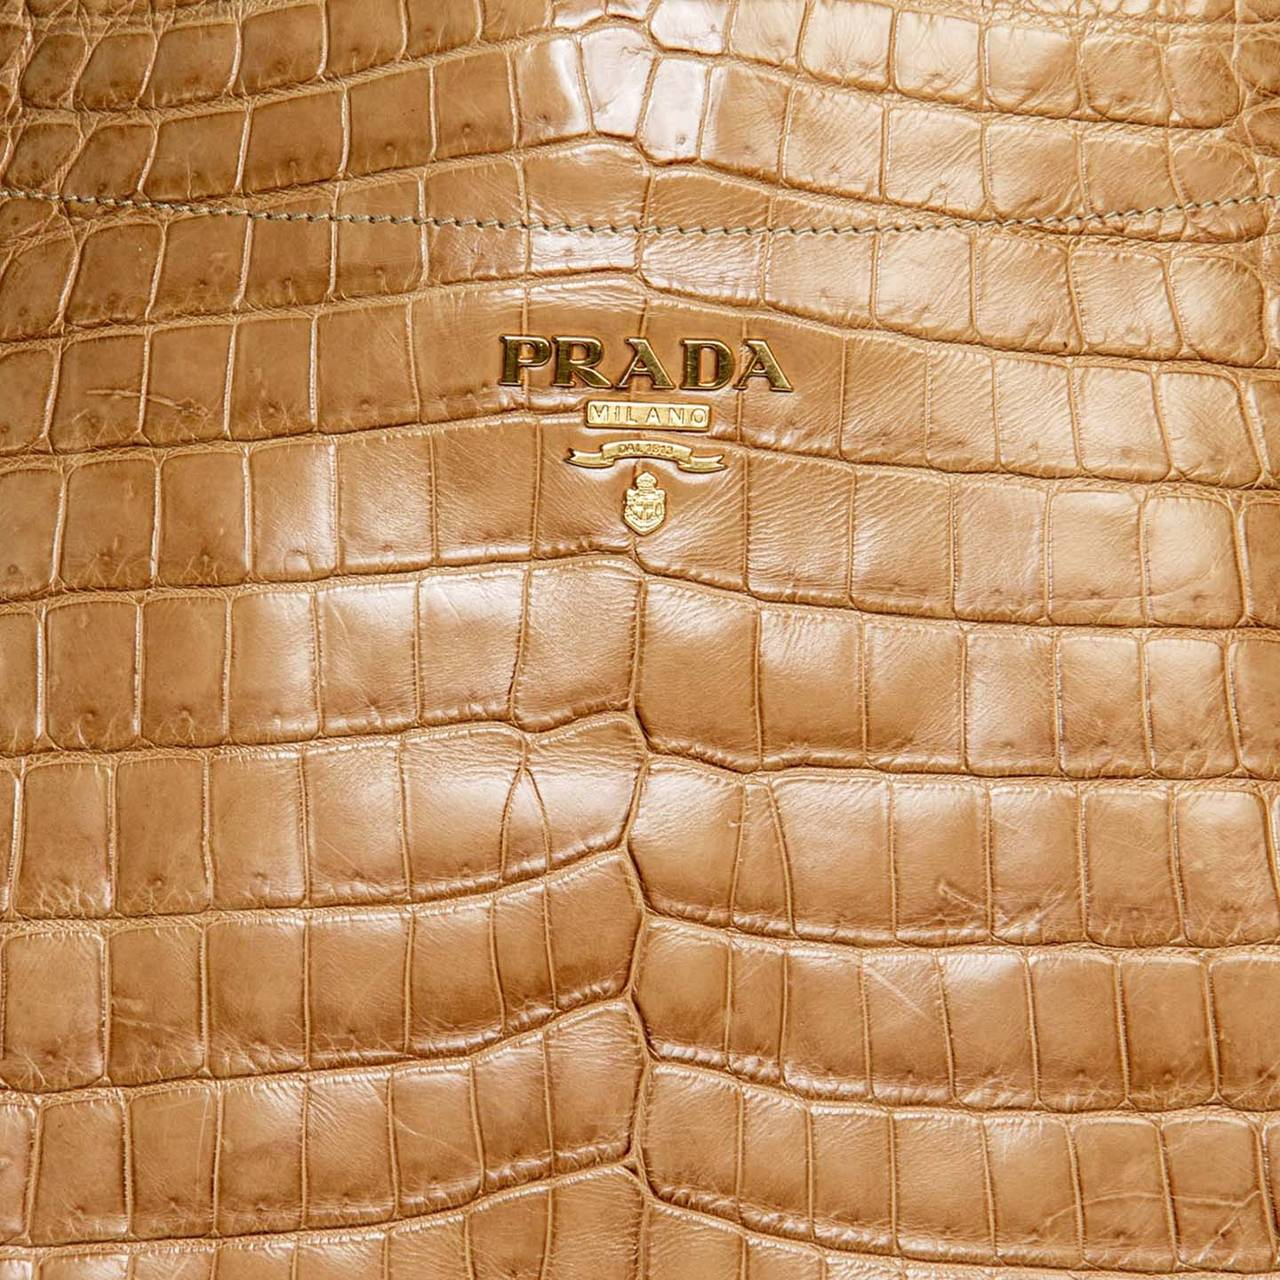 prada crocodile mirror bag